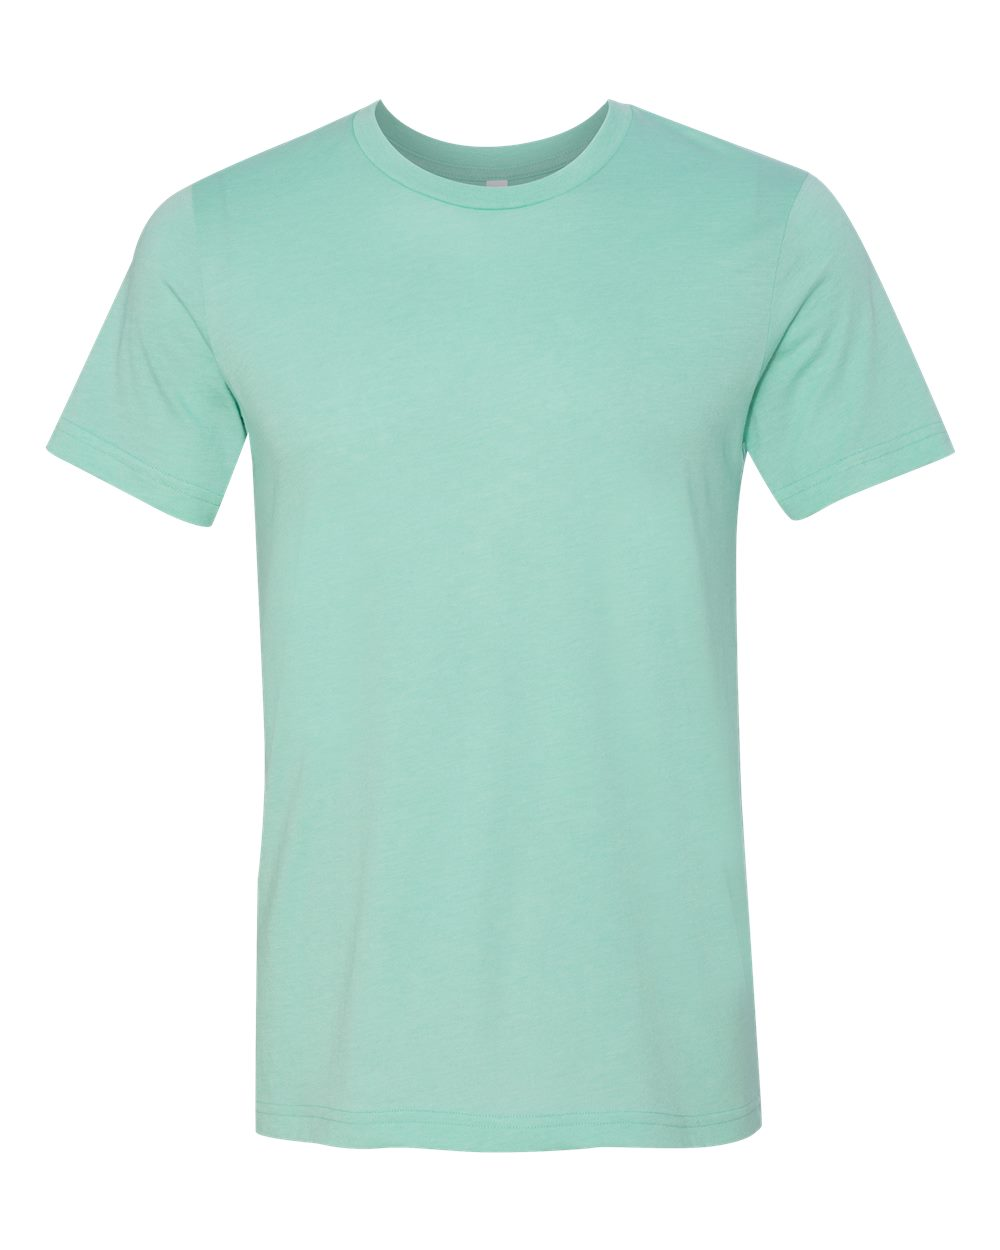 click to view Heather Mint